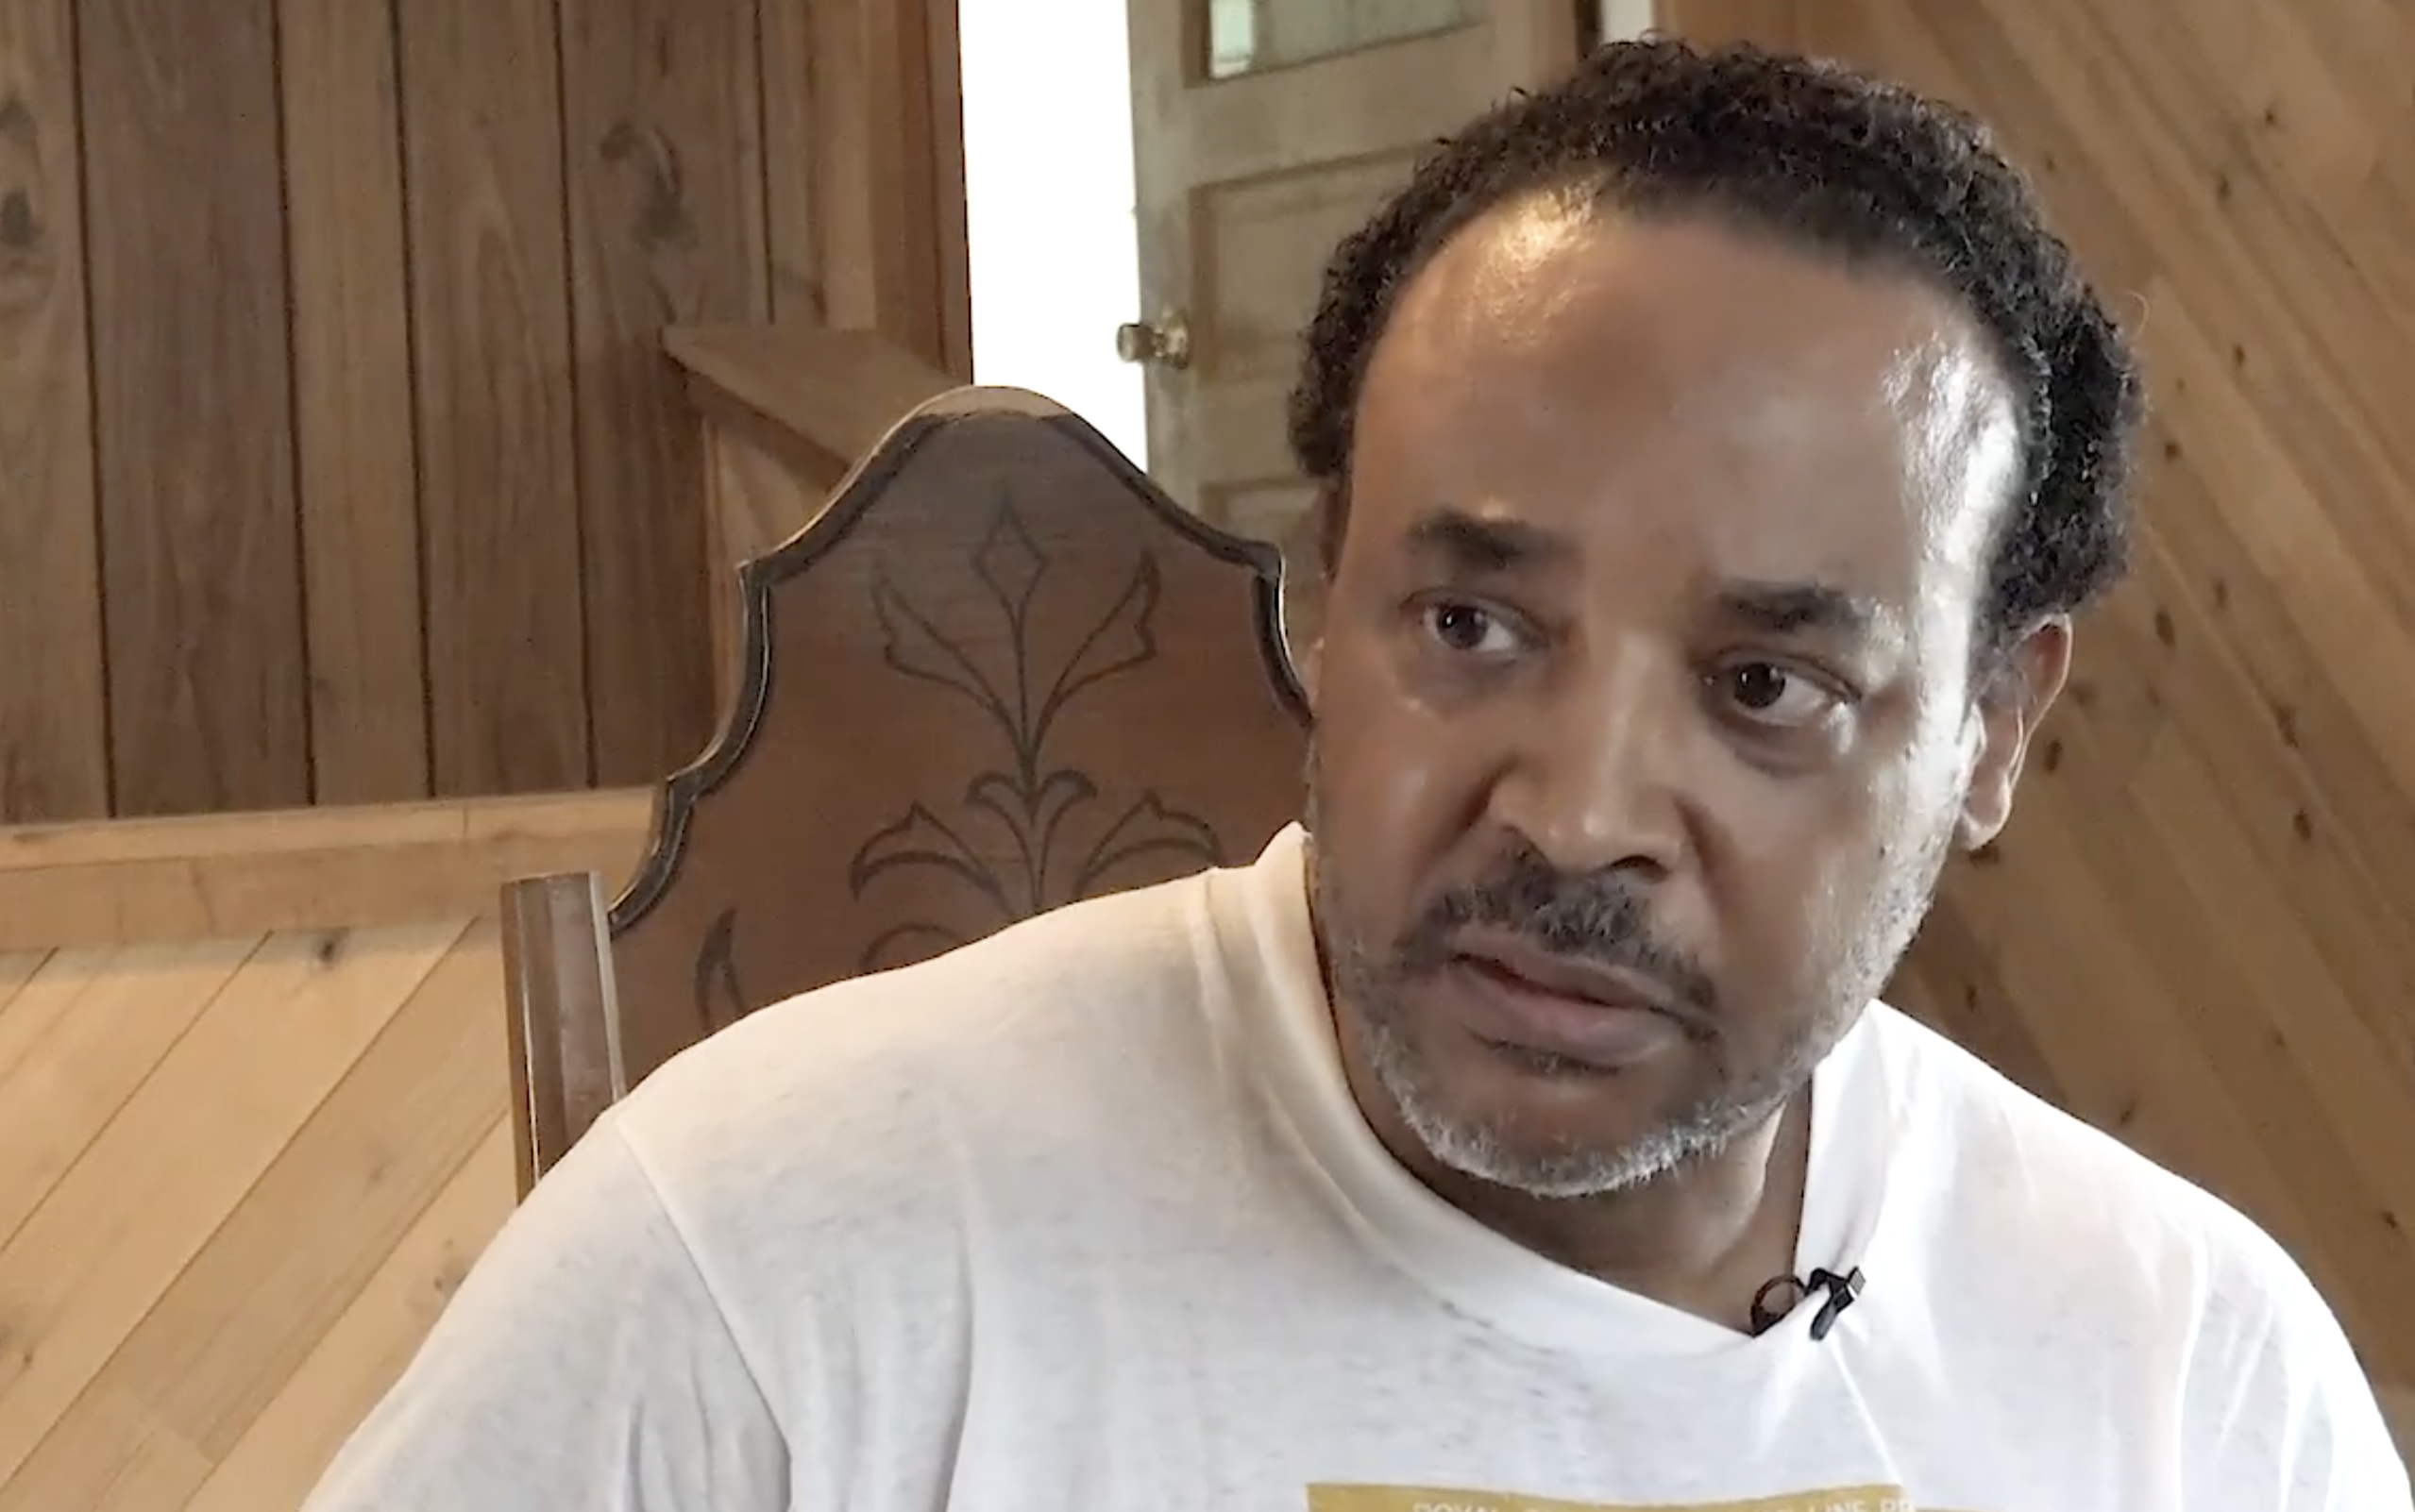 """""""Moving while black"""": the ACLU says a Kansas homeowner was racially profiled by police"""